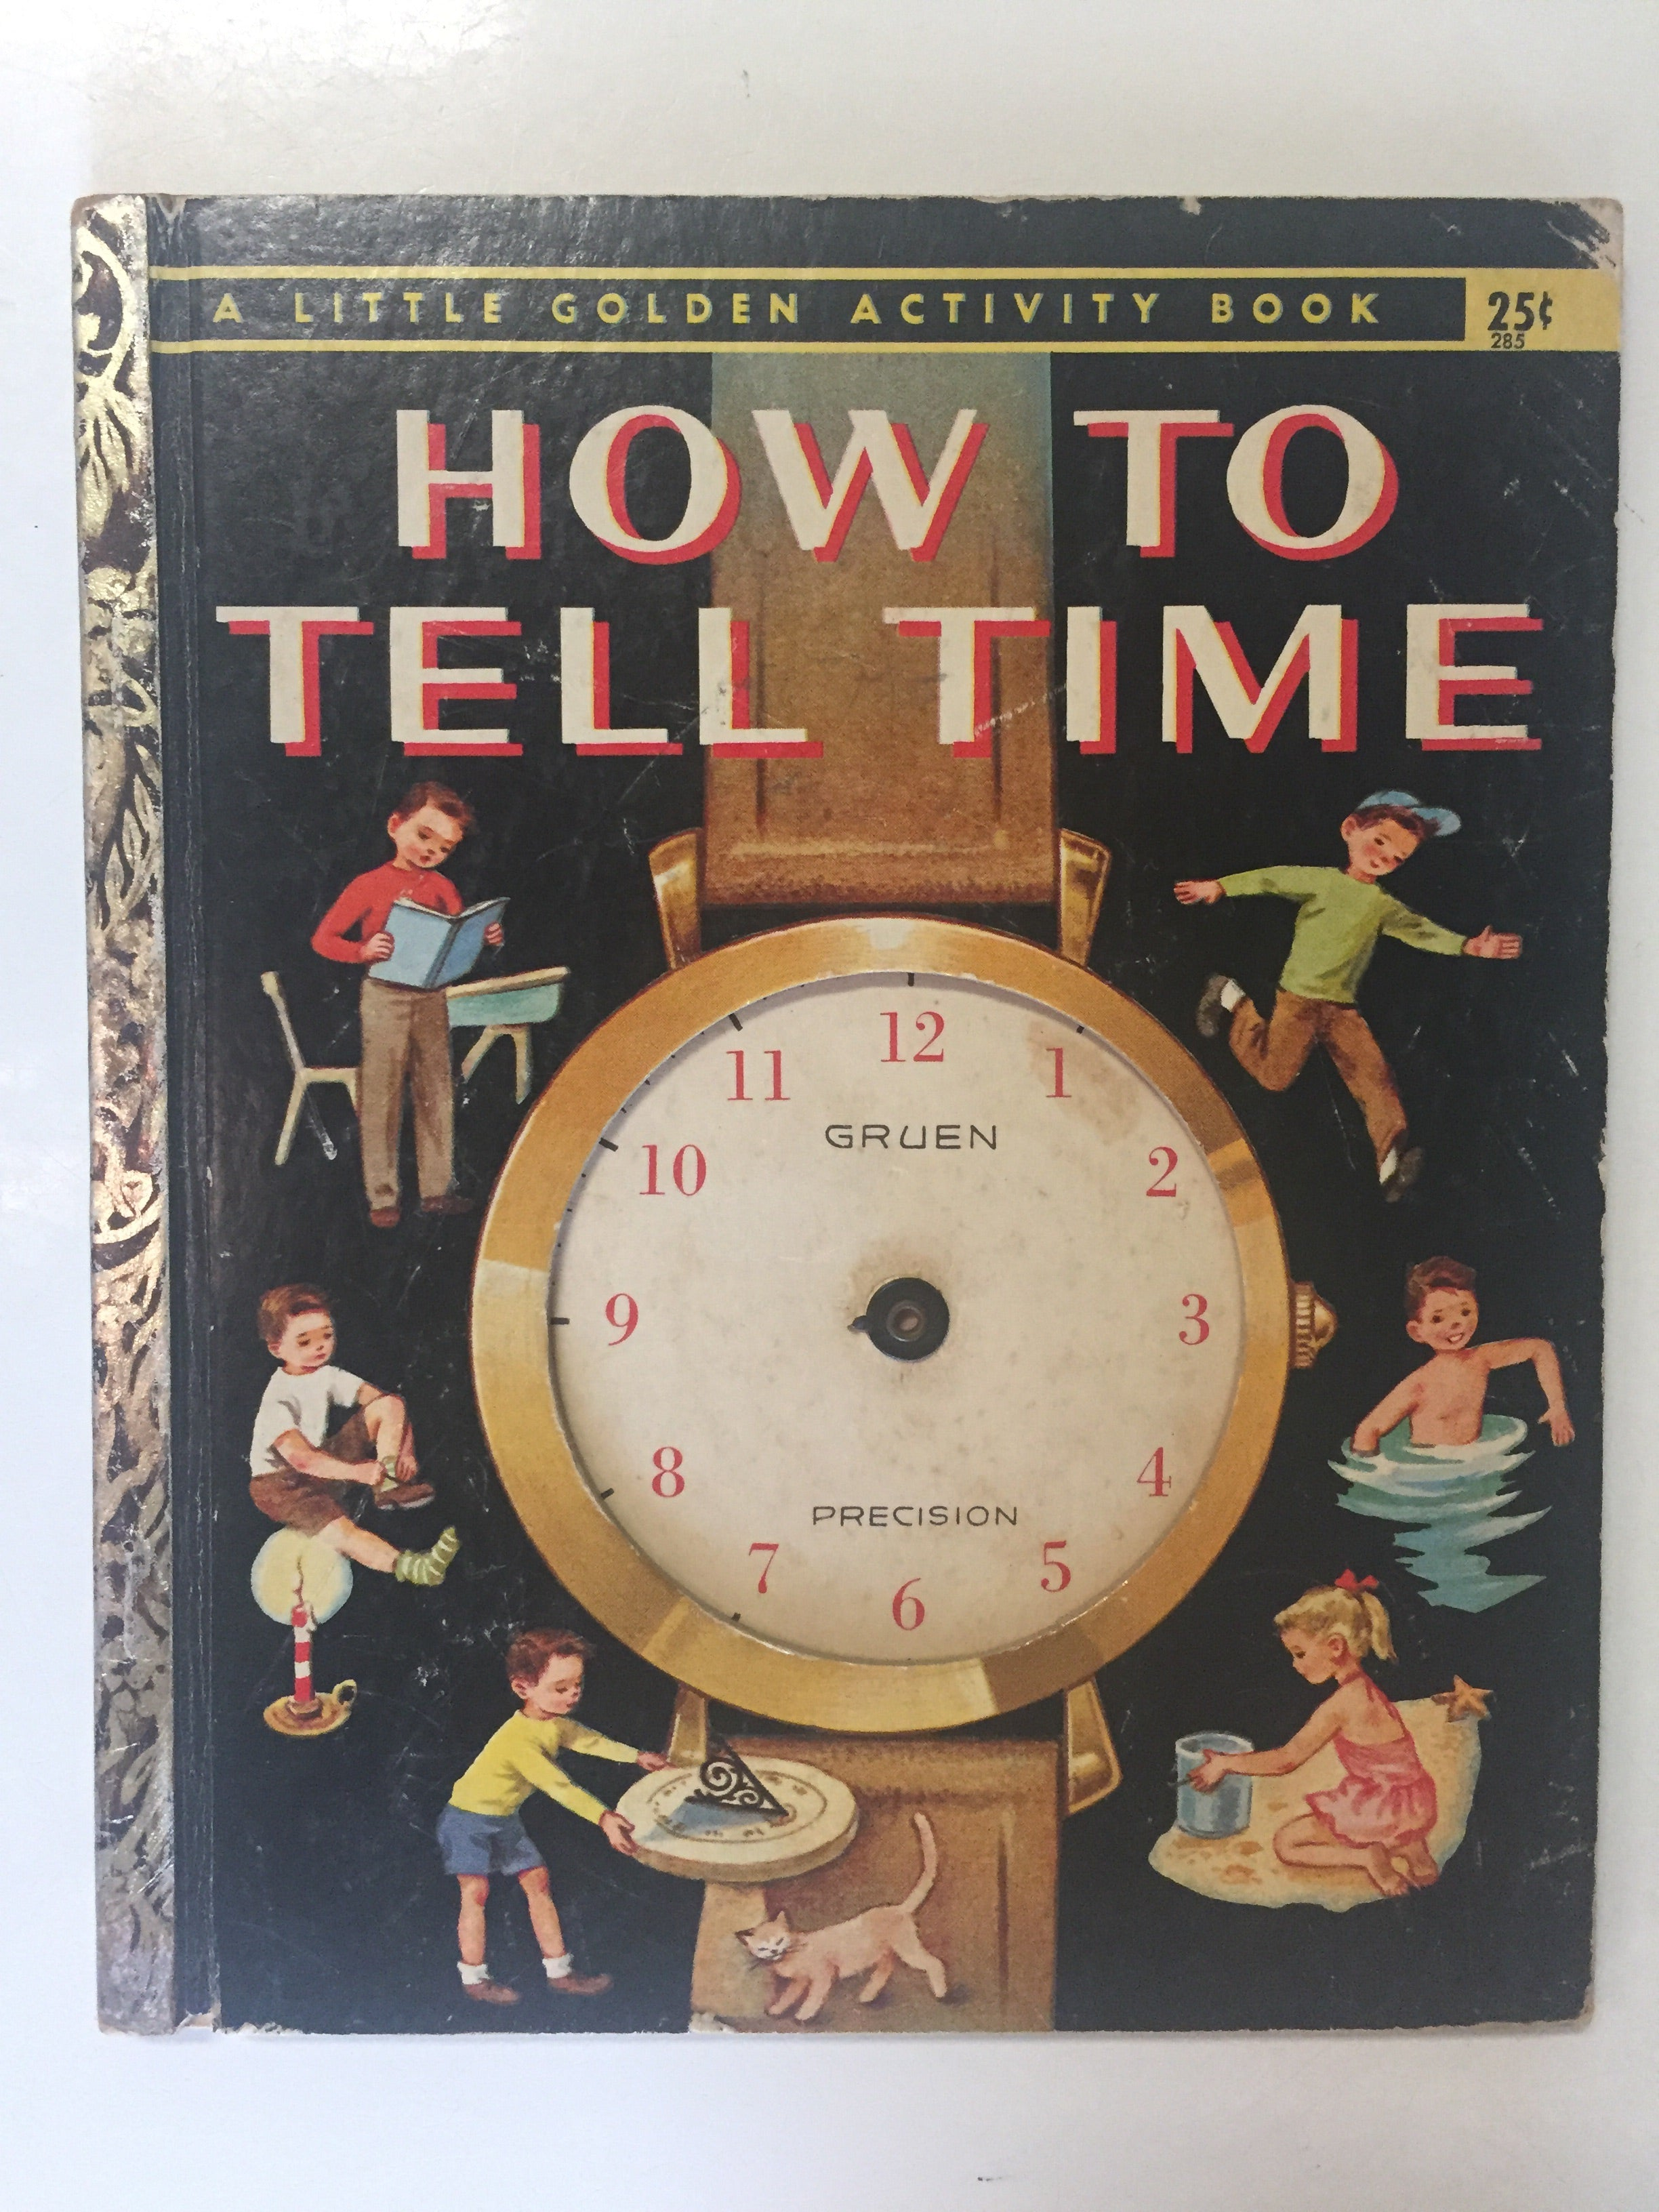 How To Tell Time - Slick Cat Books